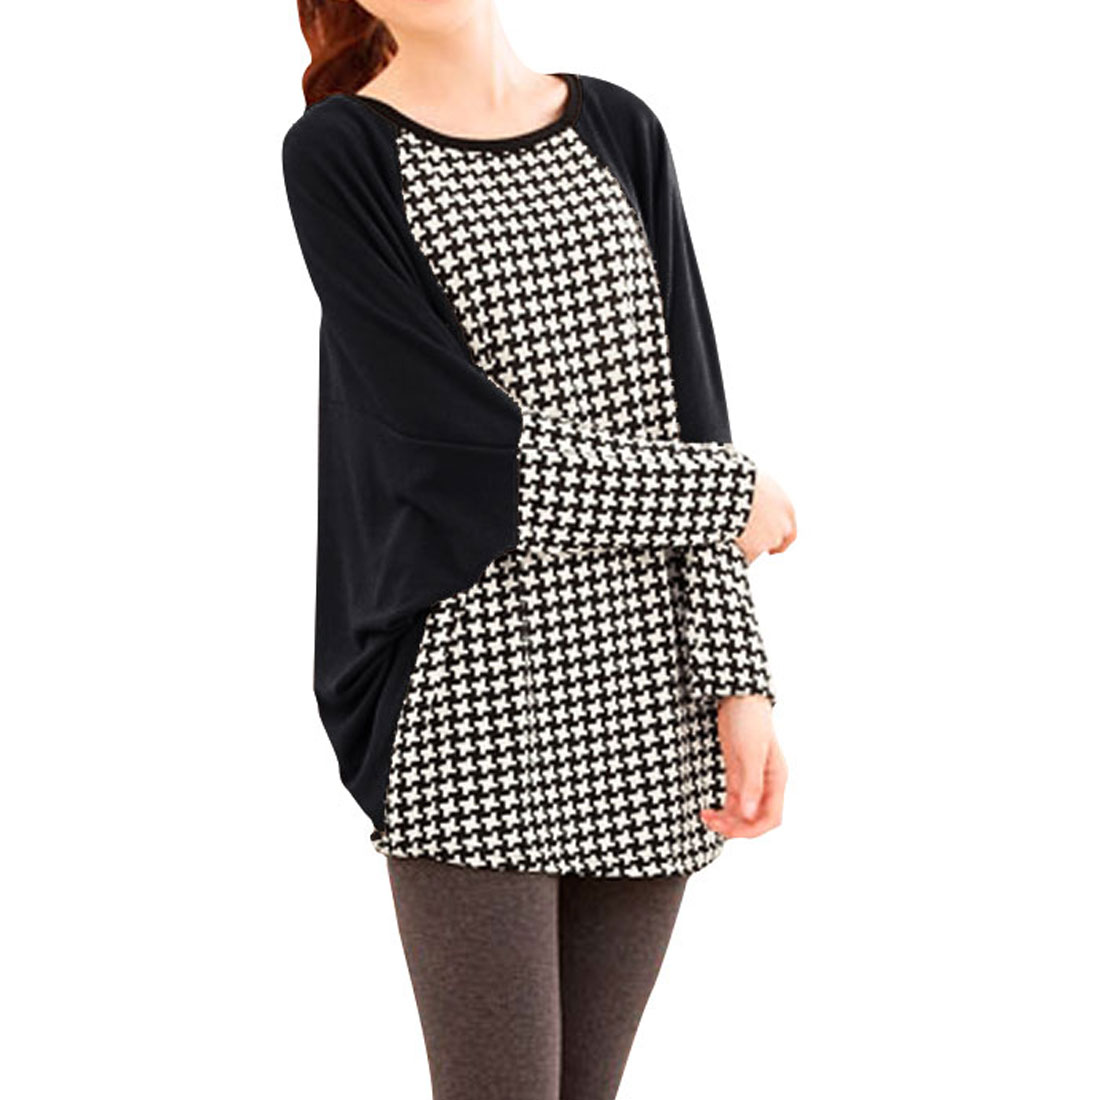 Ladies Black Batwing Sleeves Houndstooth Pattern Shirt S